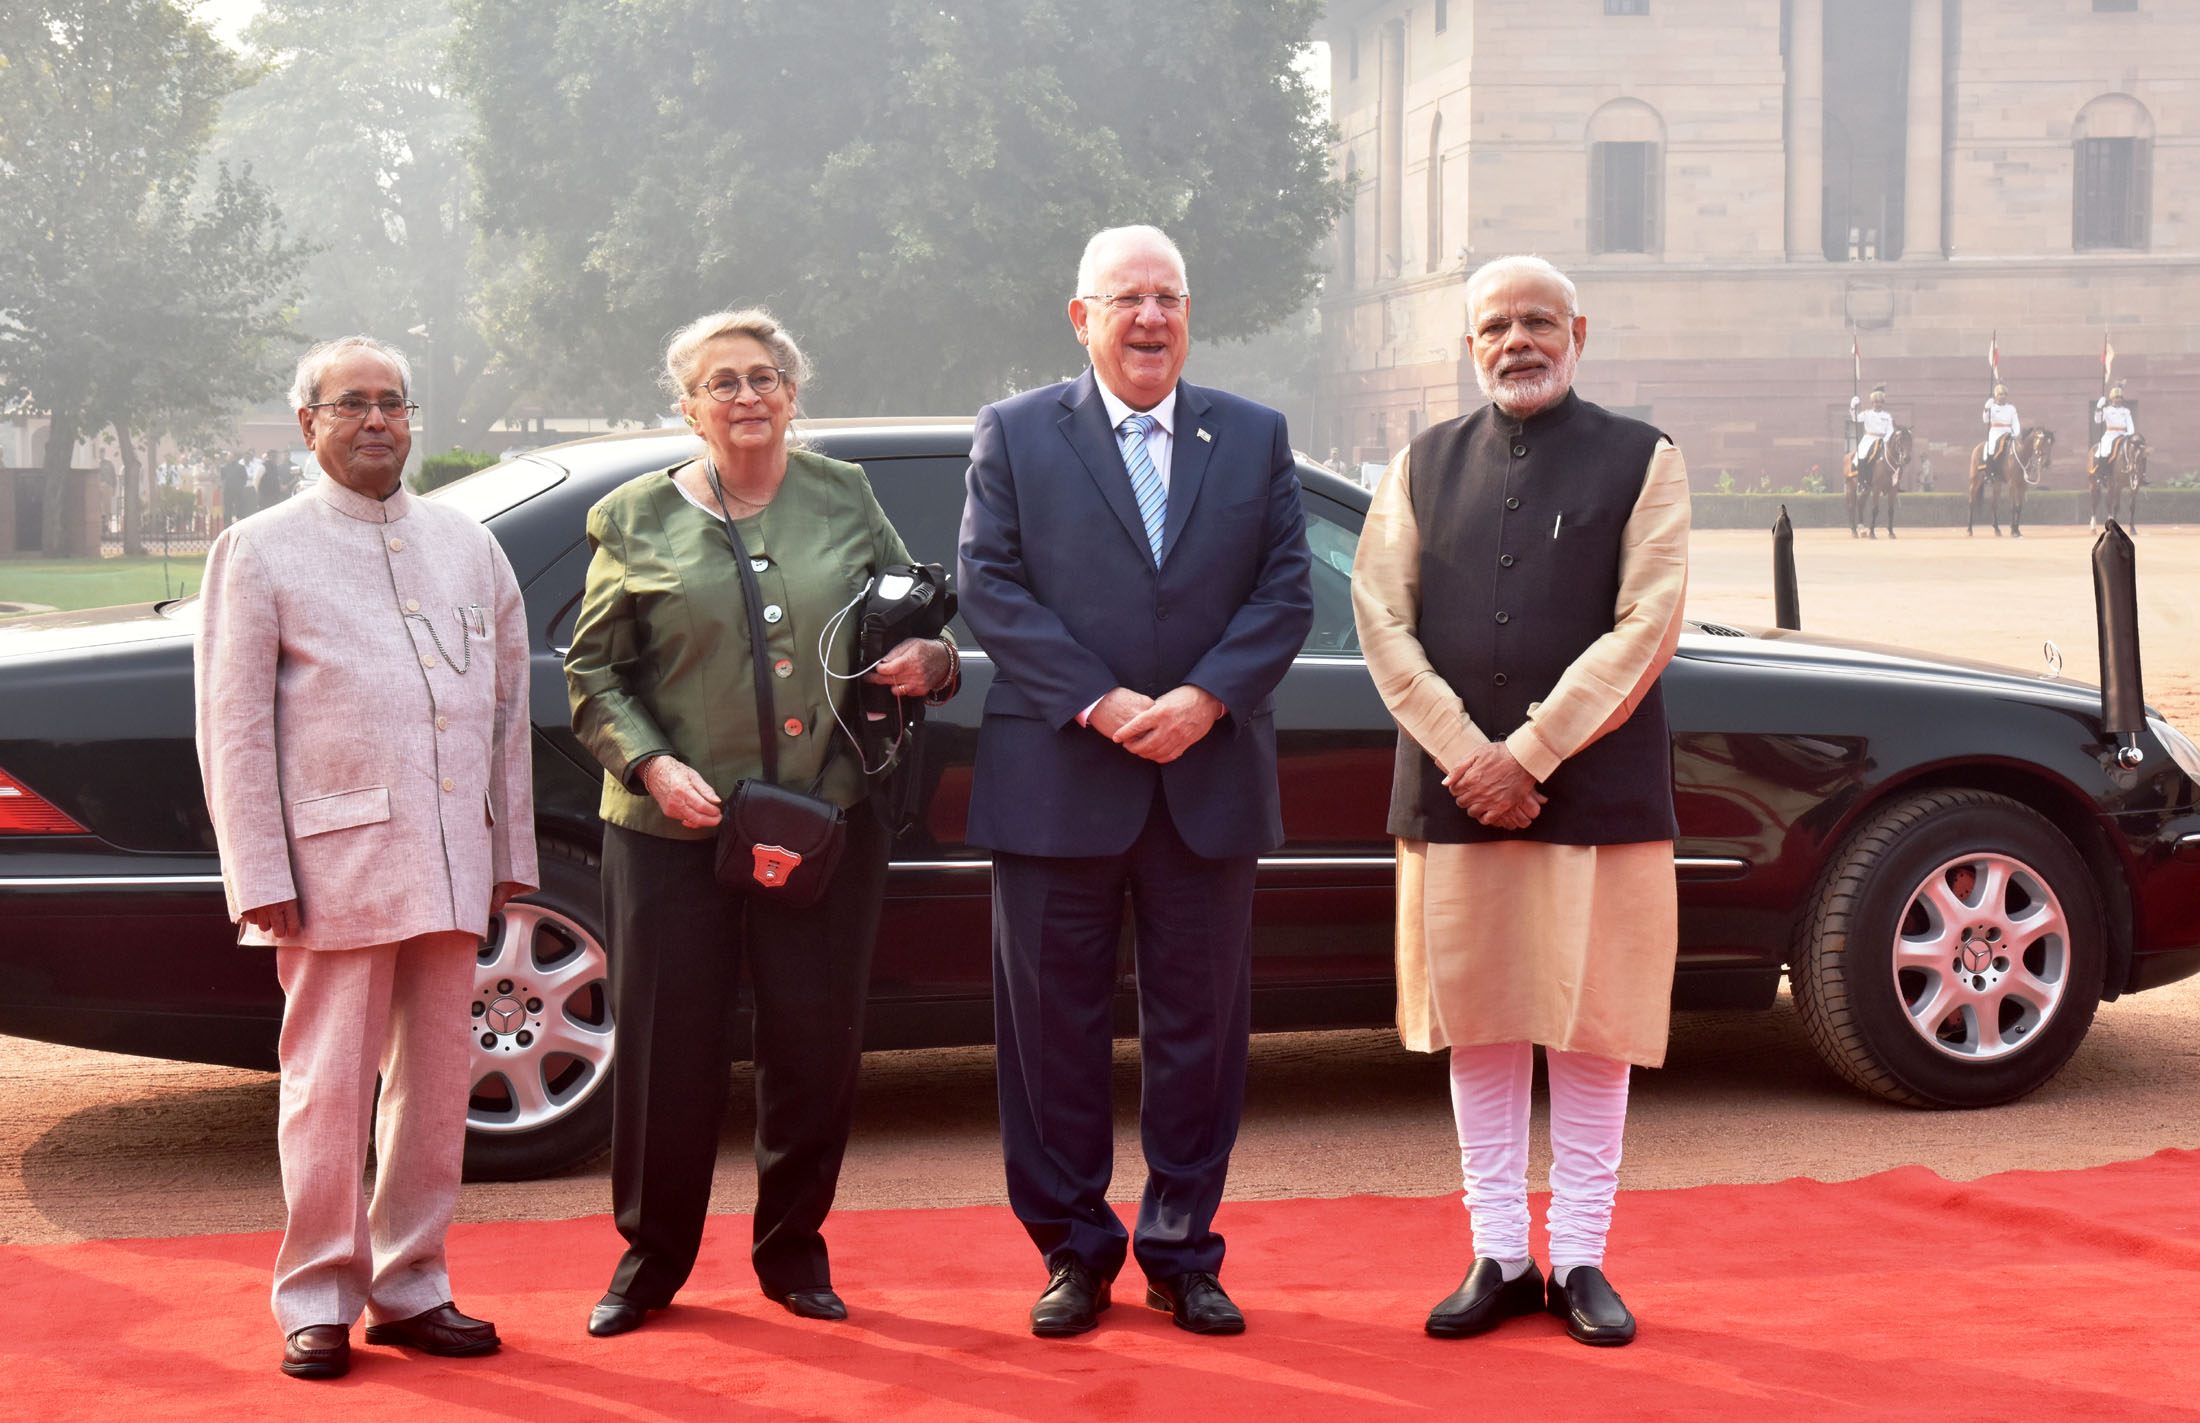 The President, Shri Pranab Mukherjee and the Prime Minister, Shri Narendra Modi with the President of Israel, Mr. Reuven Rivlin at the ceremonial welcome, at Rashtrapati Bhavan, in New Delhi on November 15, 2016.